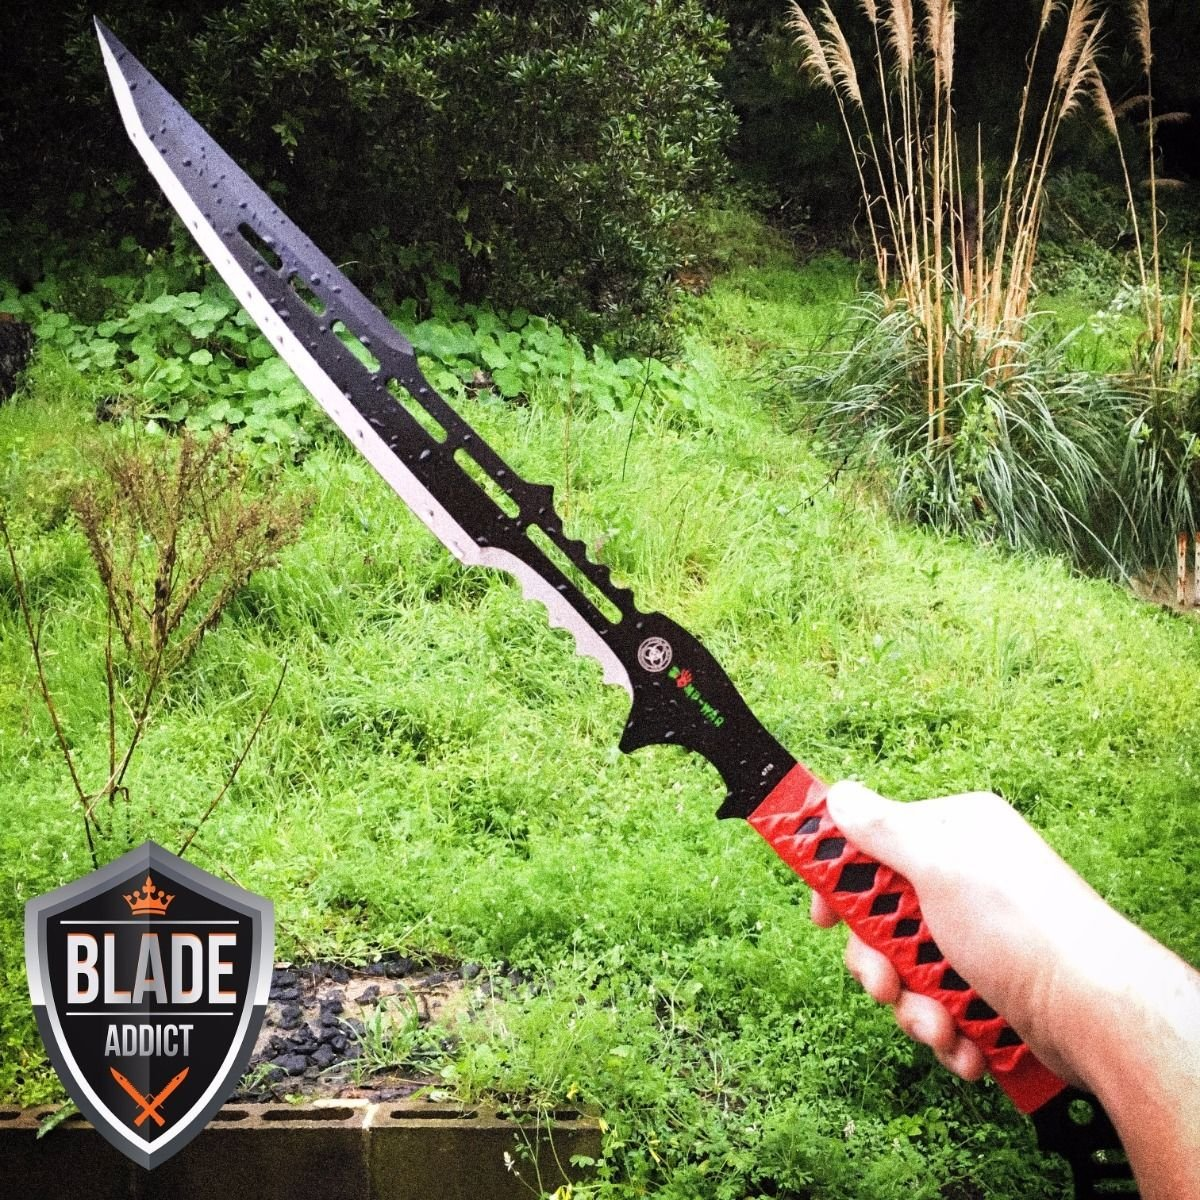 New 28'' ZOMBIE NINJA FULL TANG SWORD MACHETE TACTICAL COMBAT WARRIOR SAMURAI EcoGift Nice Knife with Sharp Blade- Great For Fun And Practical Use